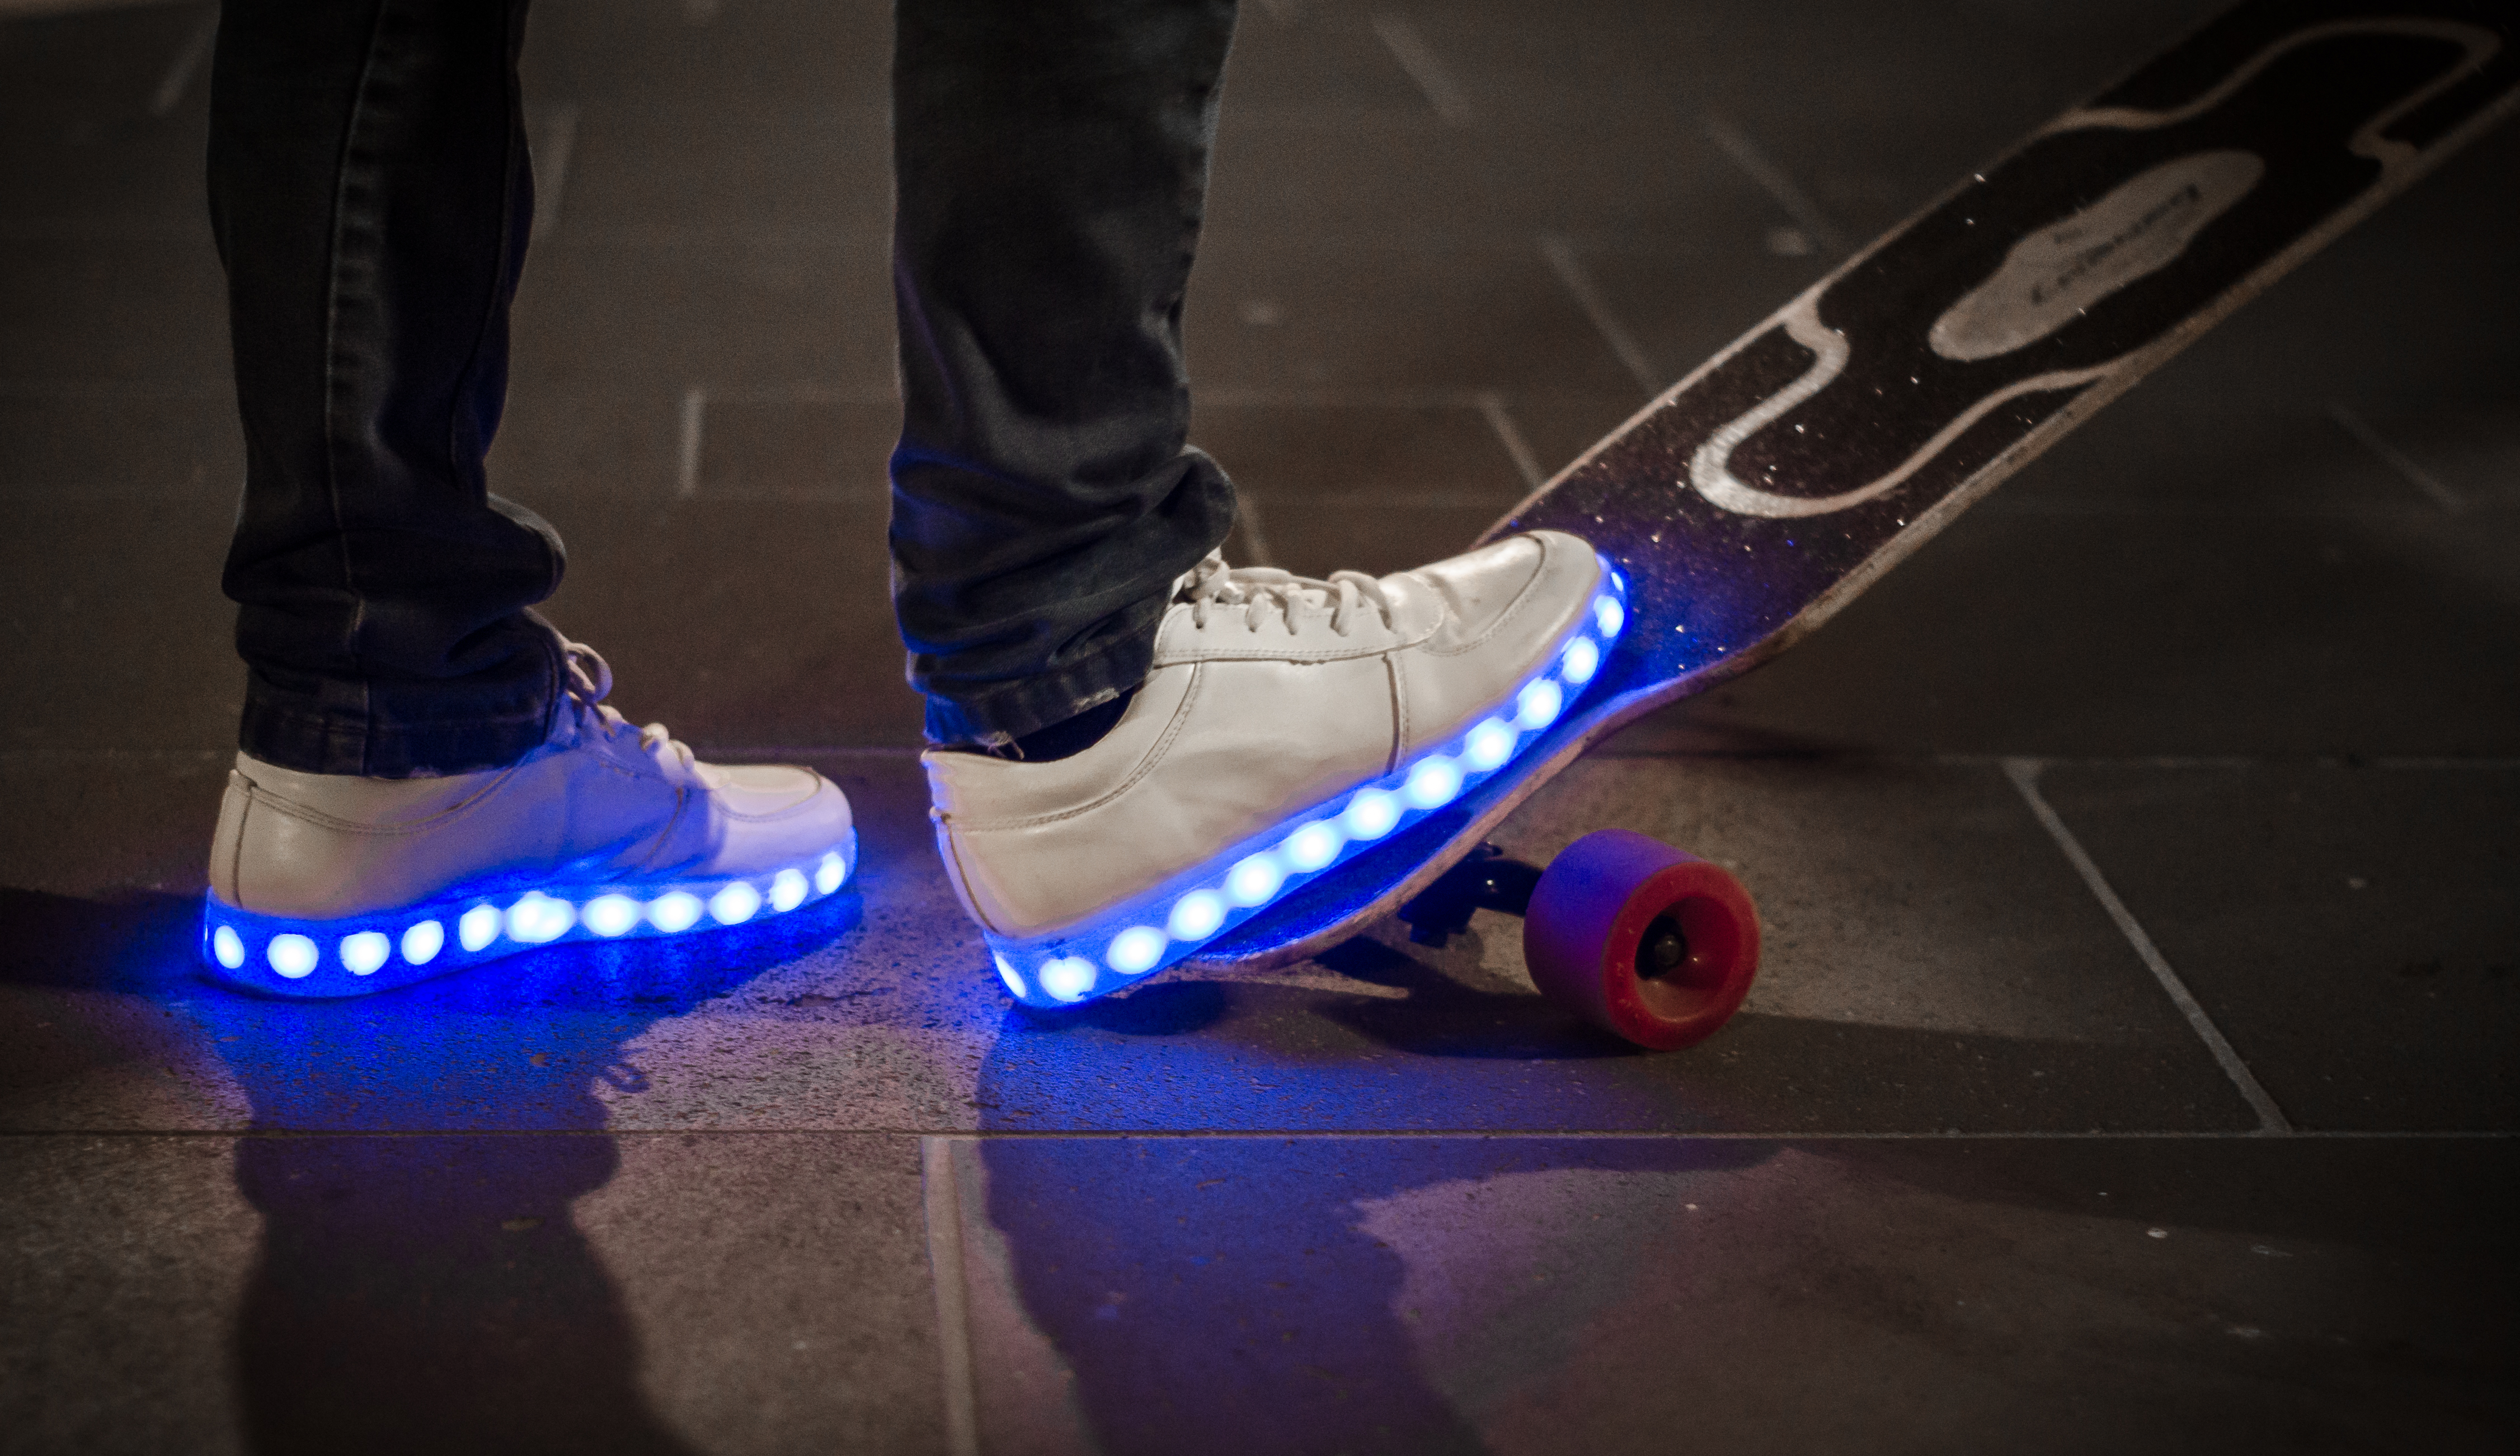 White sneakers with blue LED soles on skateboard.